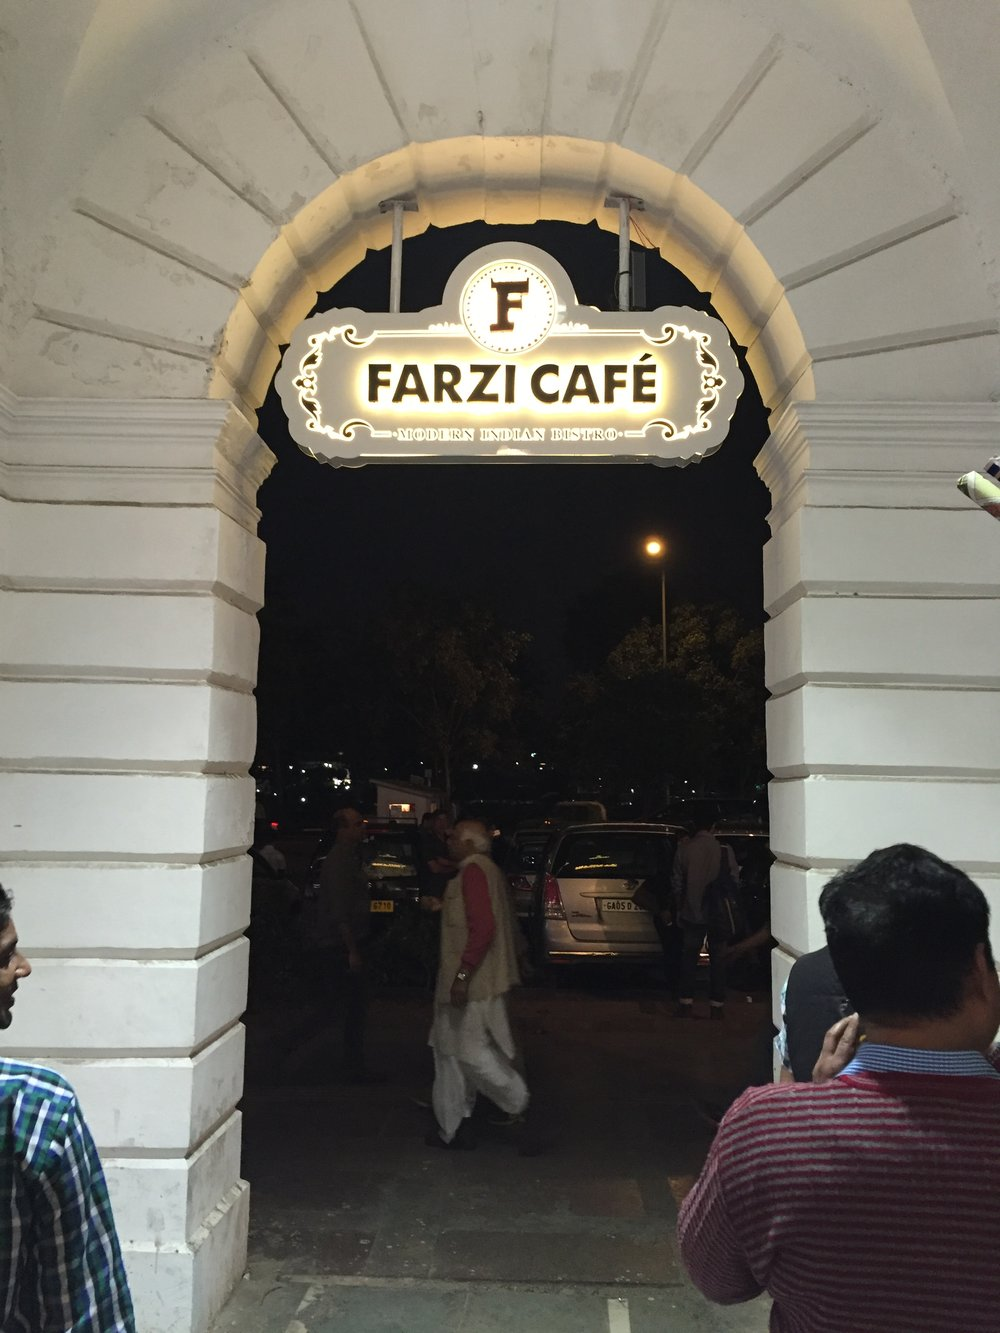 Farzi Cafe in Delhi's Connaught Place